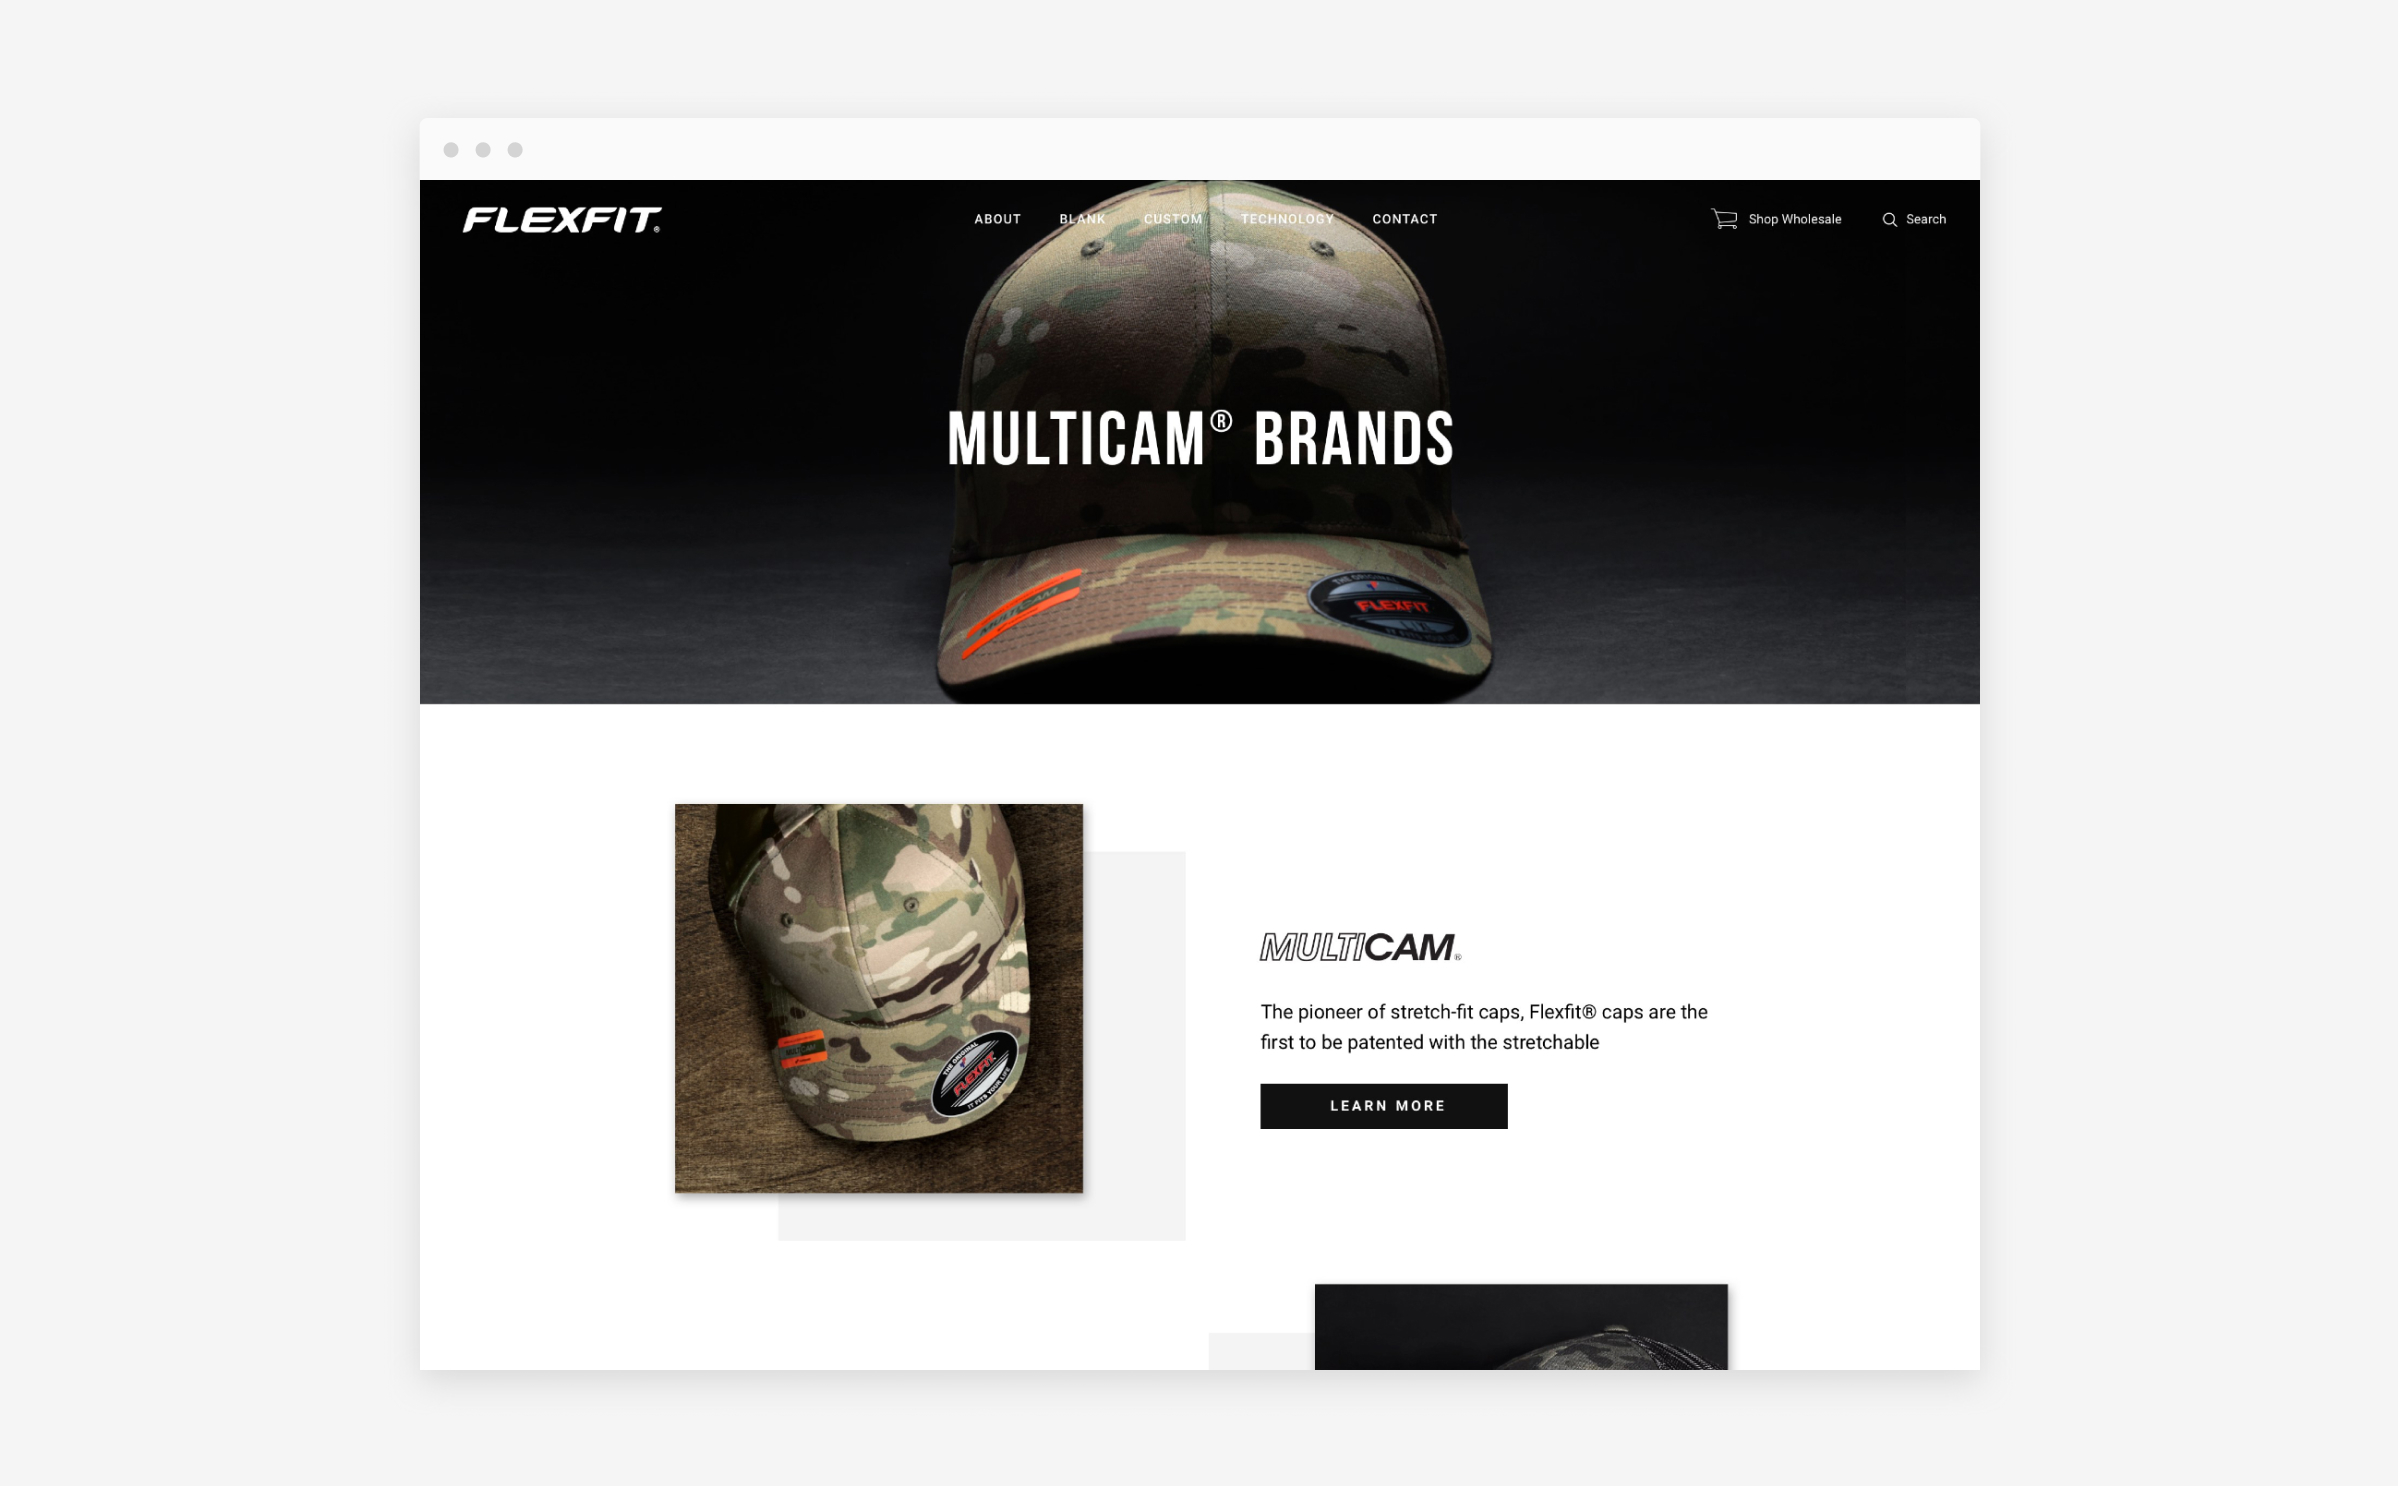 flexfit website multi cam brands page